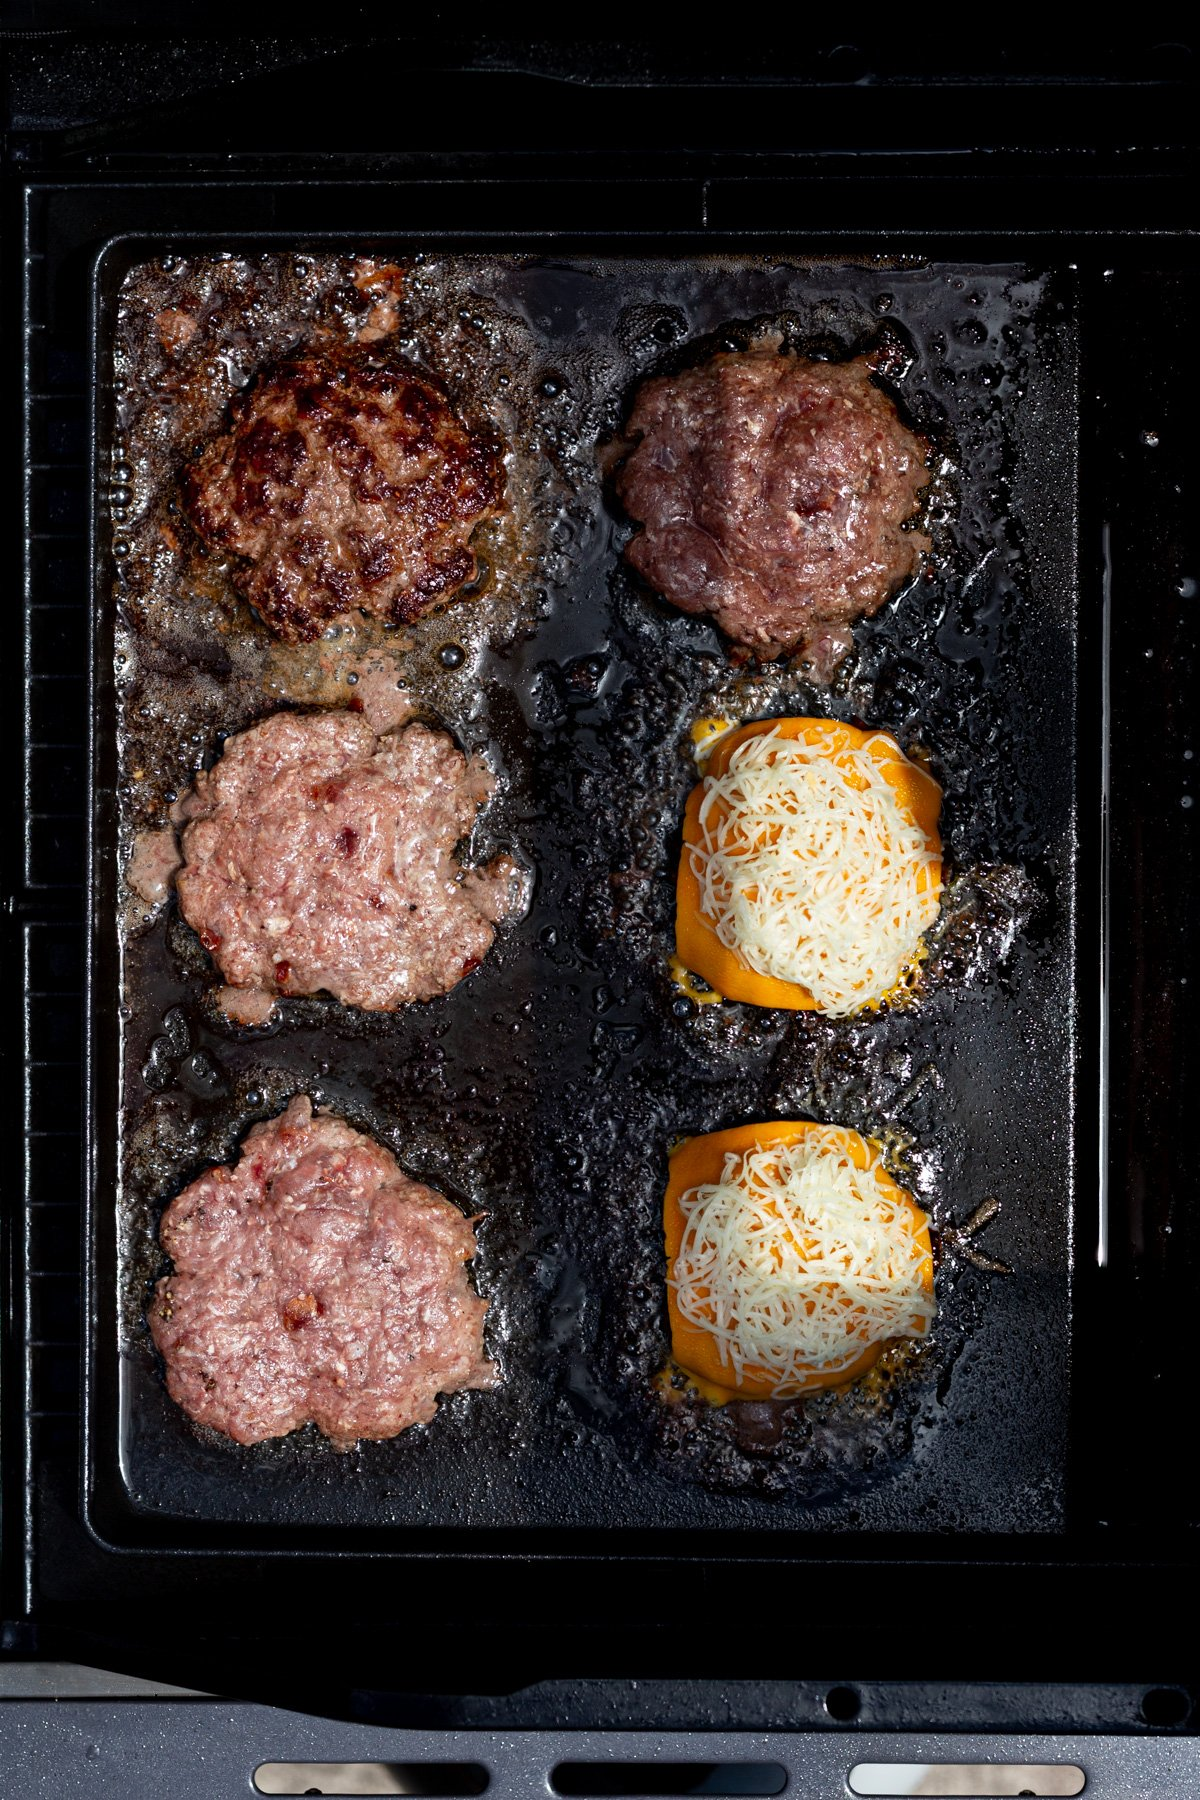 Bacon smash burger recipe cooking on griddle of gas grill, two with cheese on them